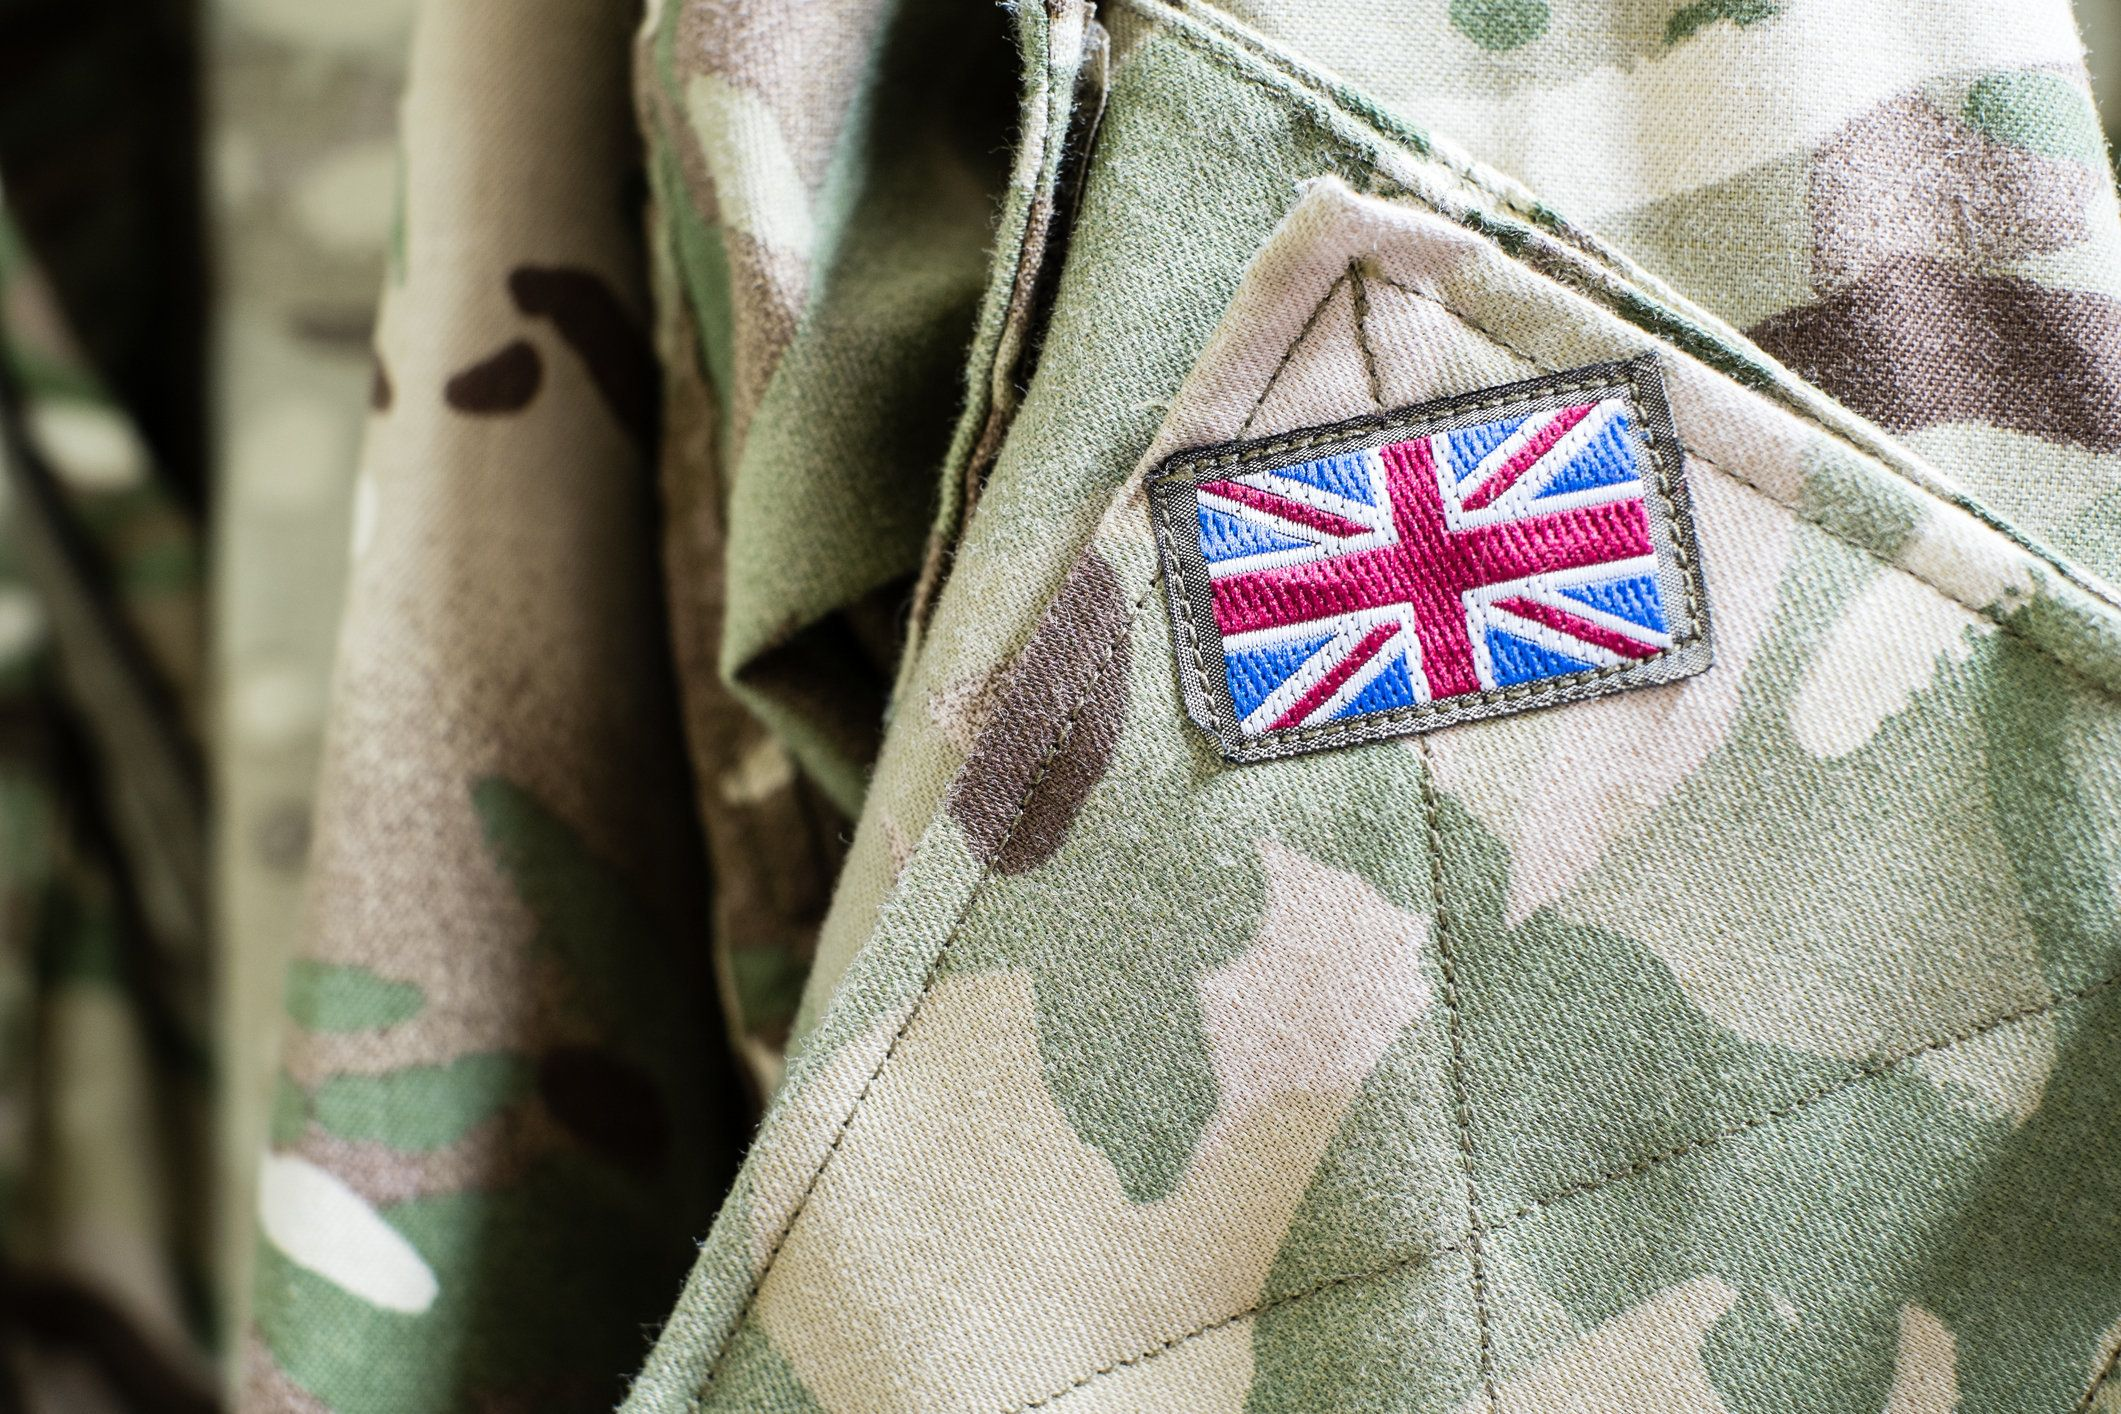 British Army Accused Of Racism Over 'Blackface'